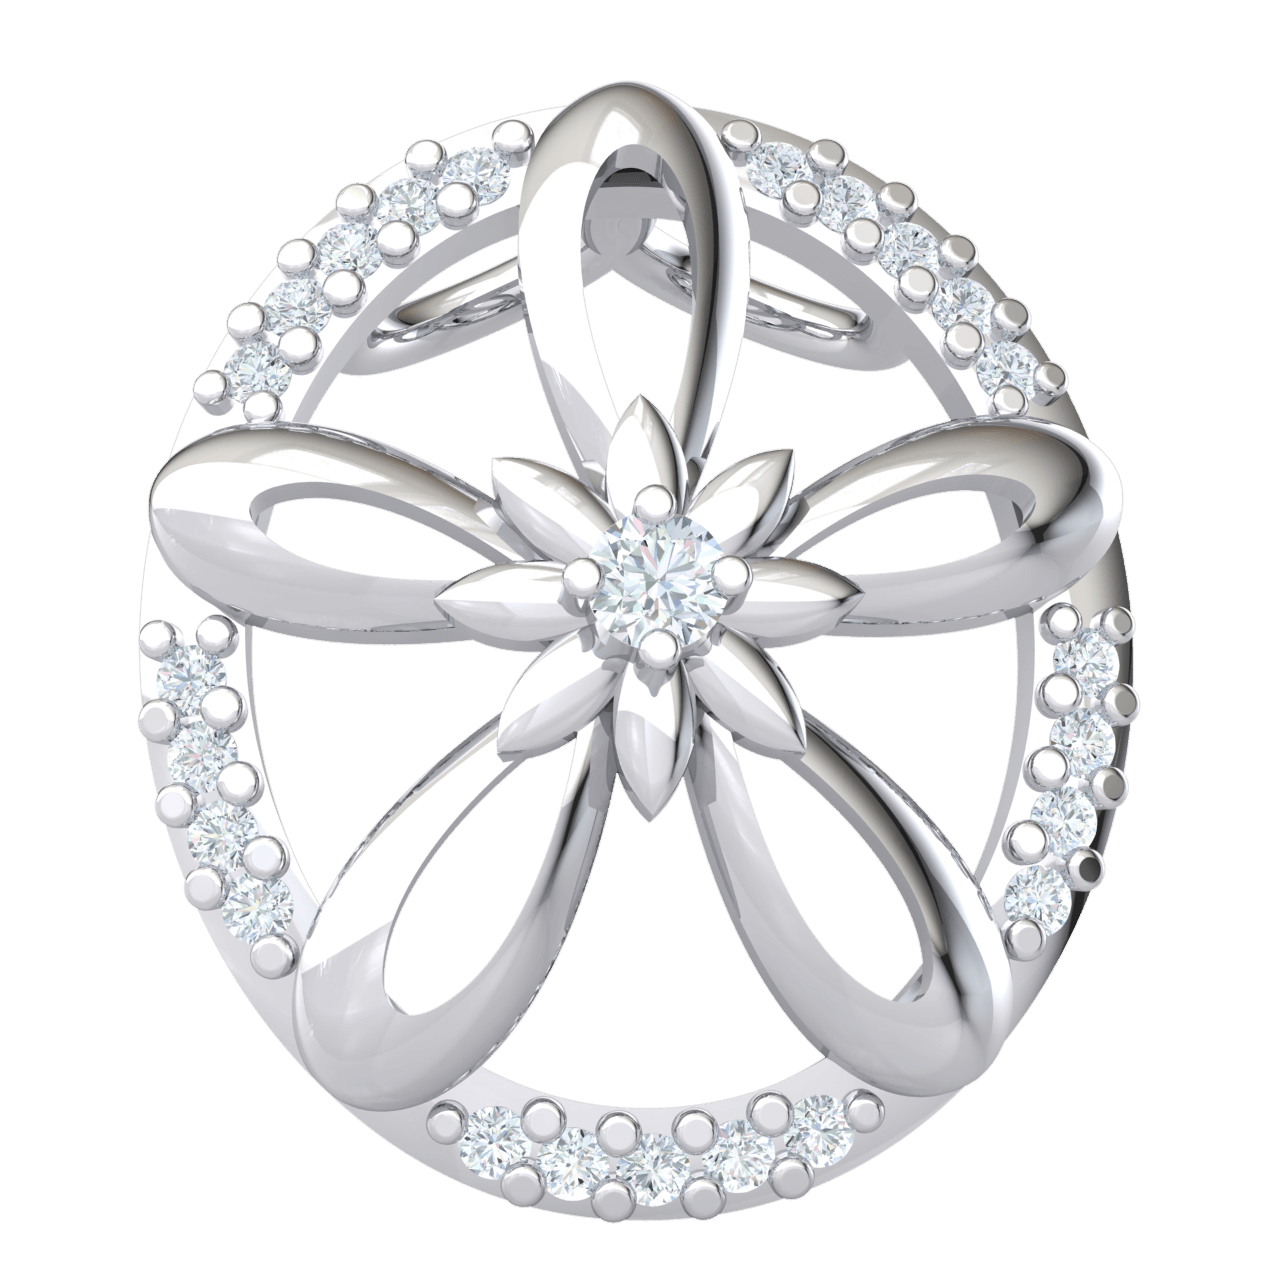 Beautiful Pendant Arrangement Of Real Flowers Inside A Sparkling White Diamond Oval 0.11 Ct IJ SI2 and 14 kt Gold